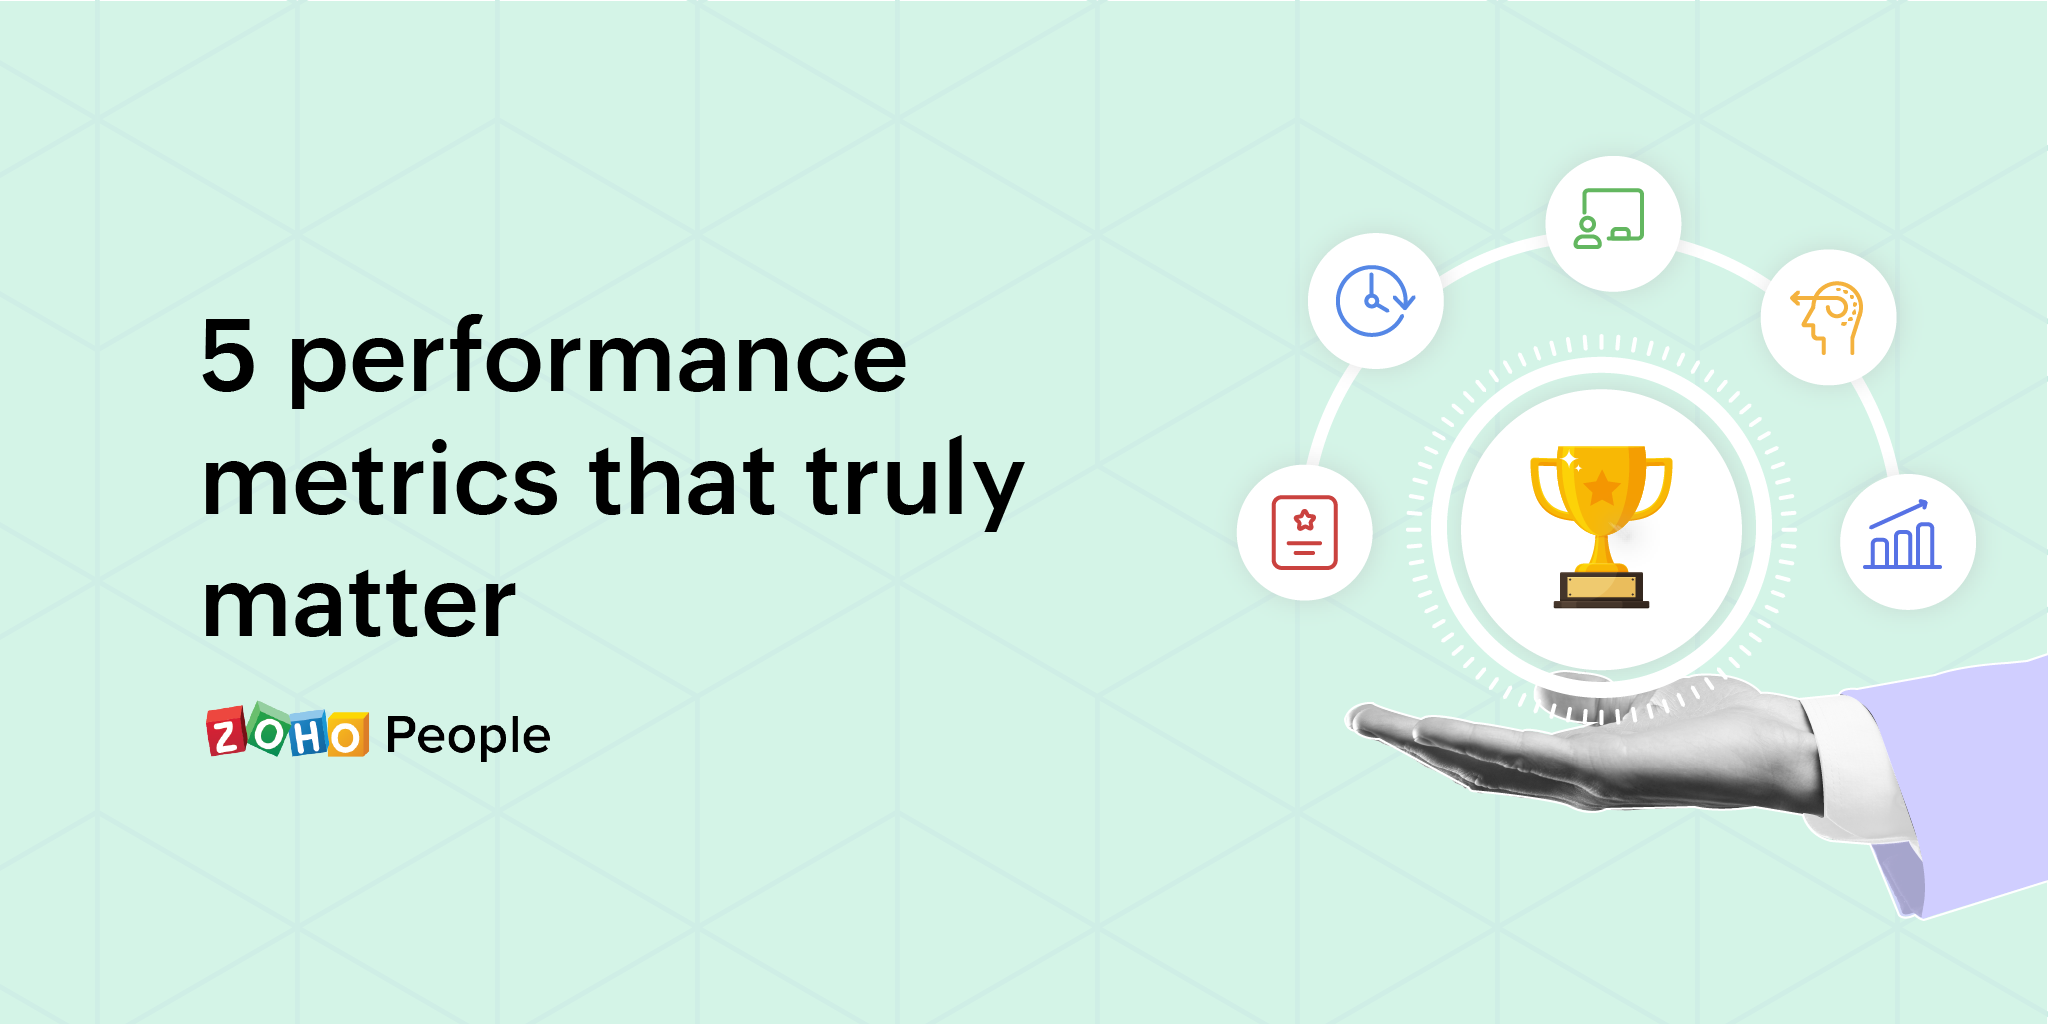 5 performance metrics that are actually important to track